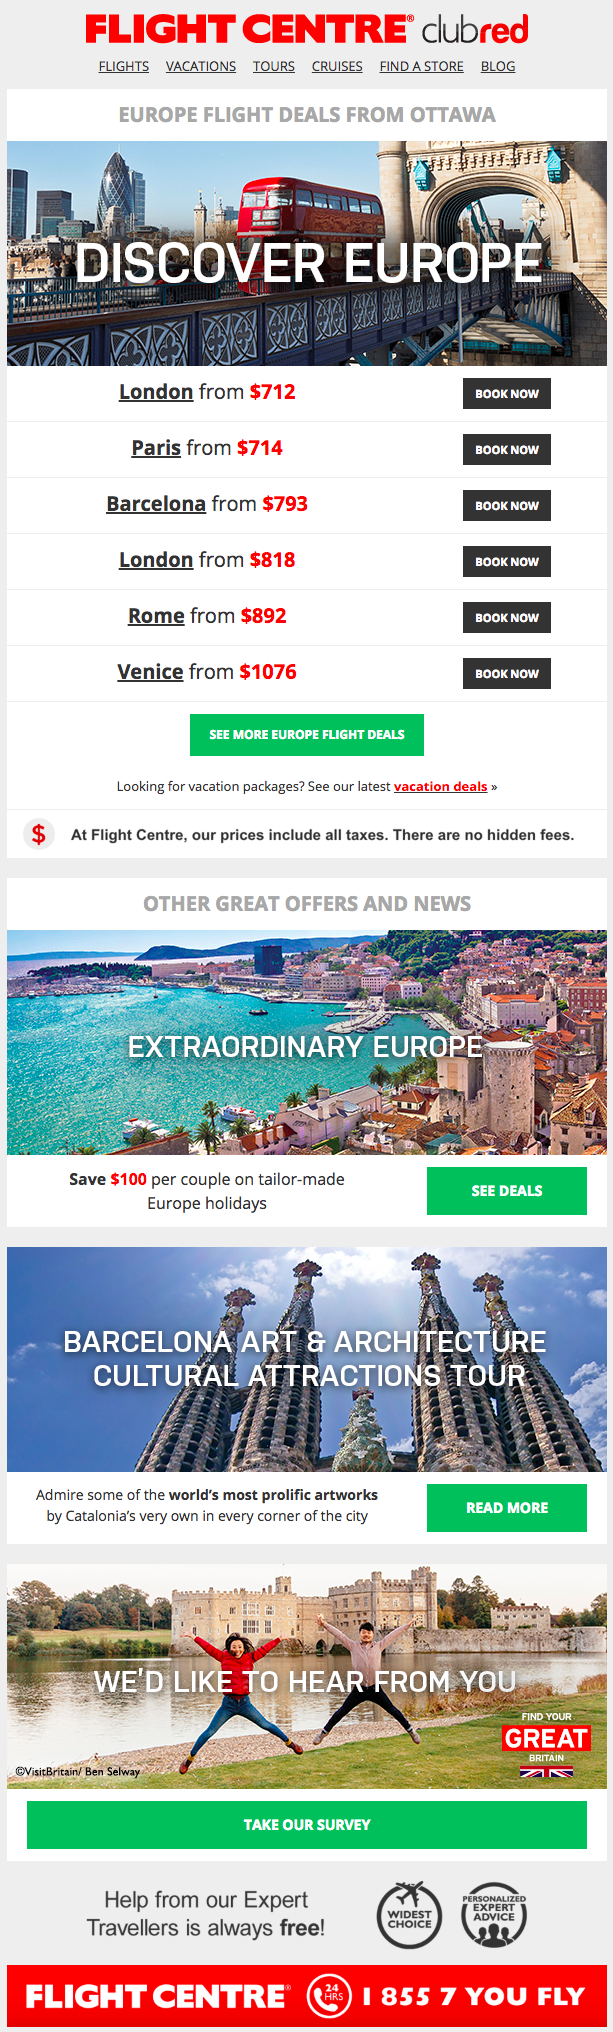 Flight Centre – Automated Offer Email – Browser History